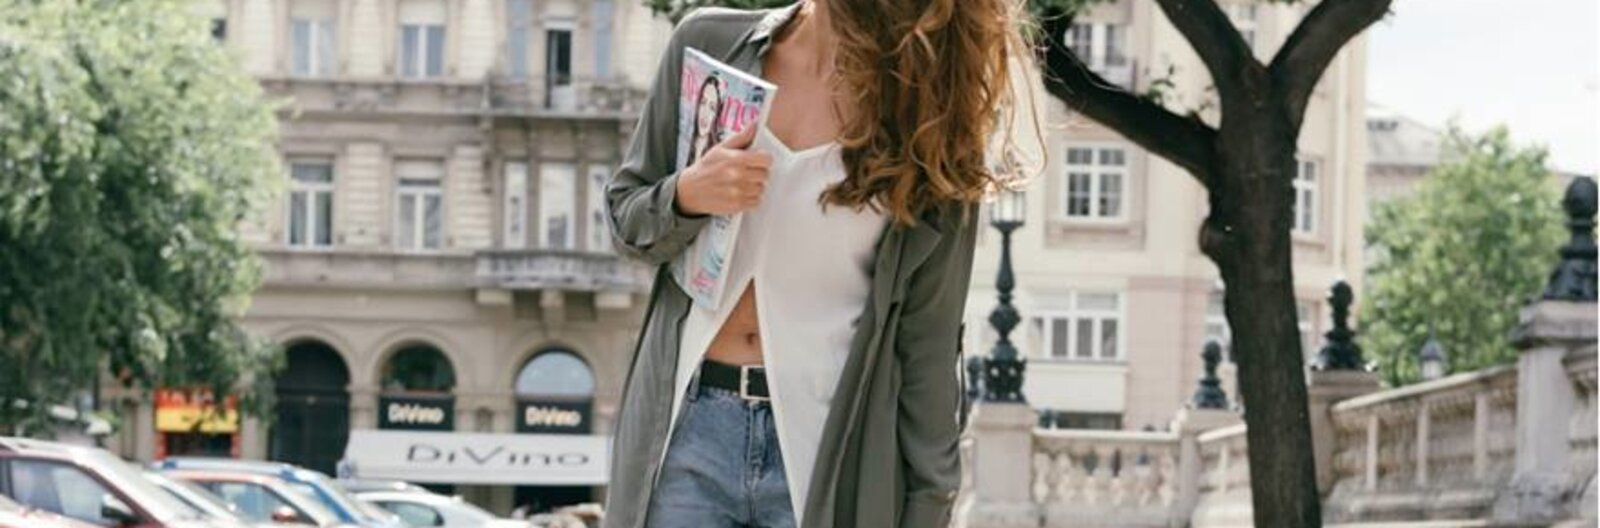 5 fashionable blogs covering Hungary's style scene in English